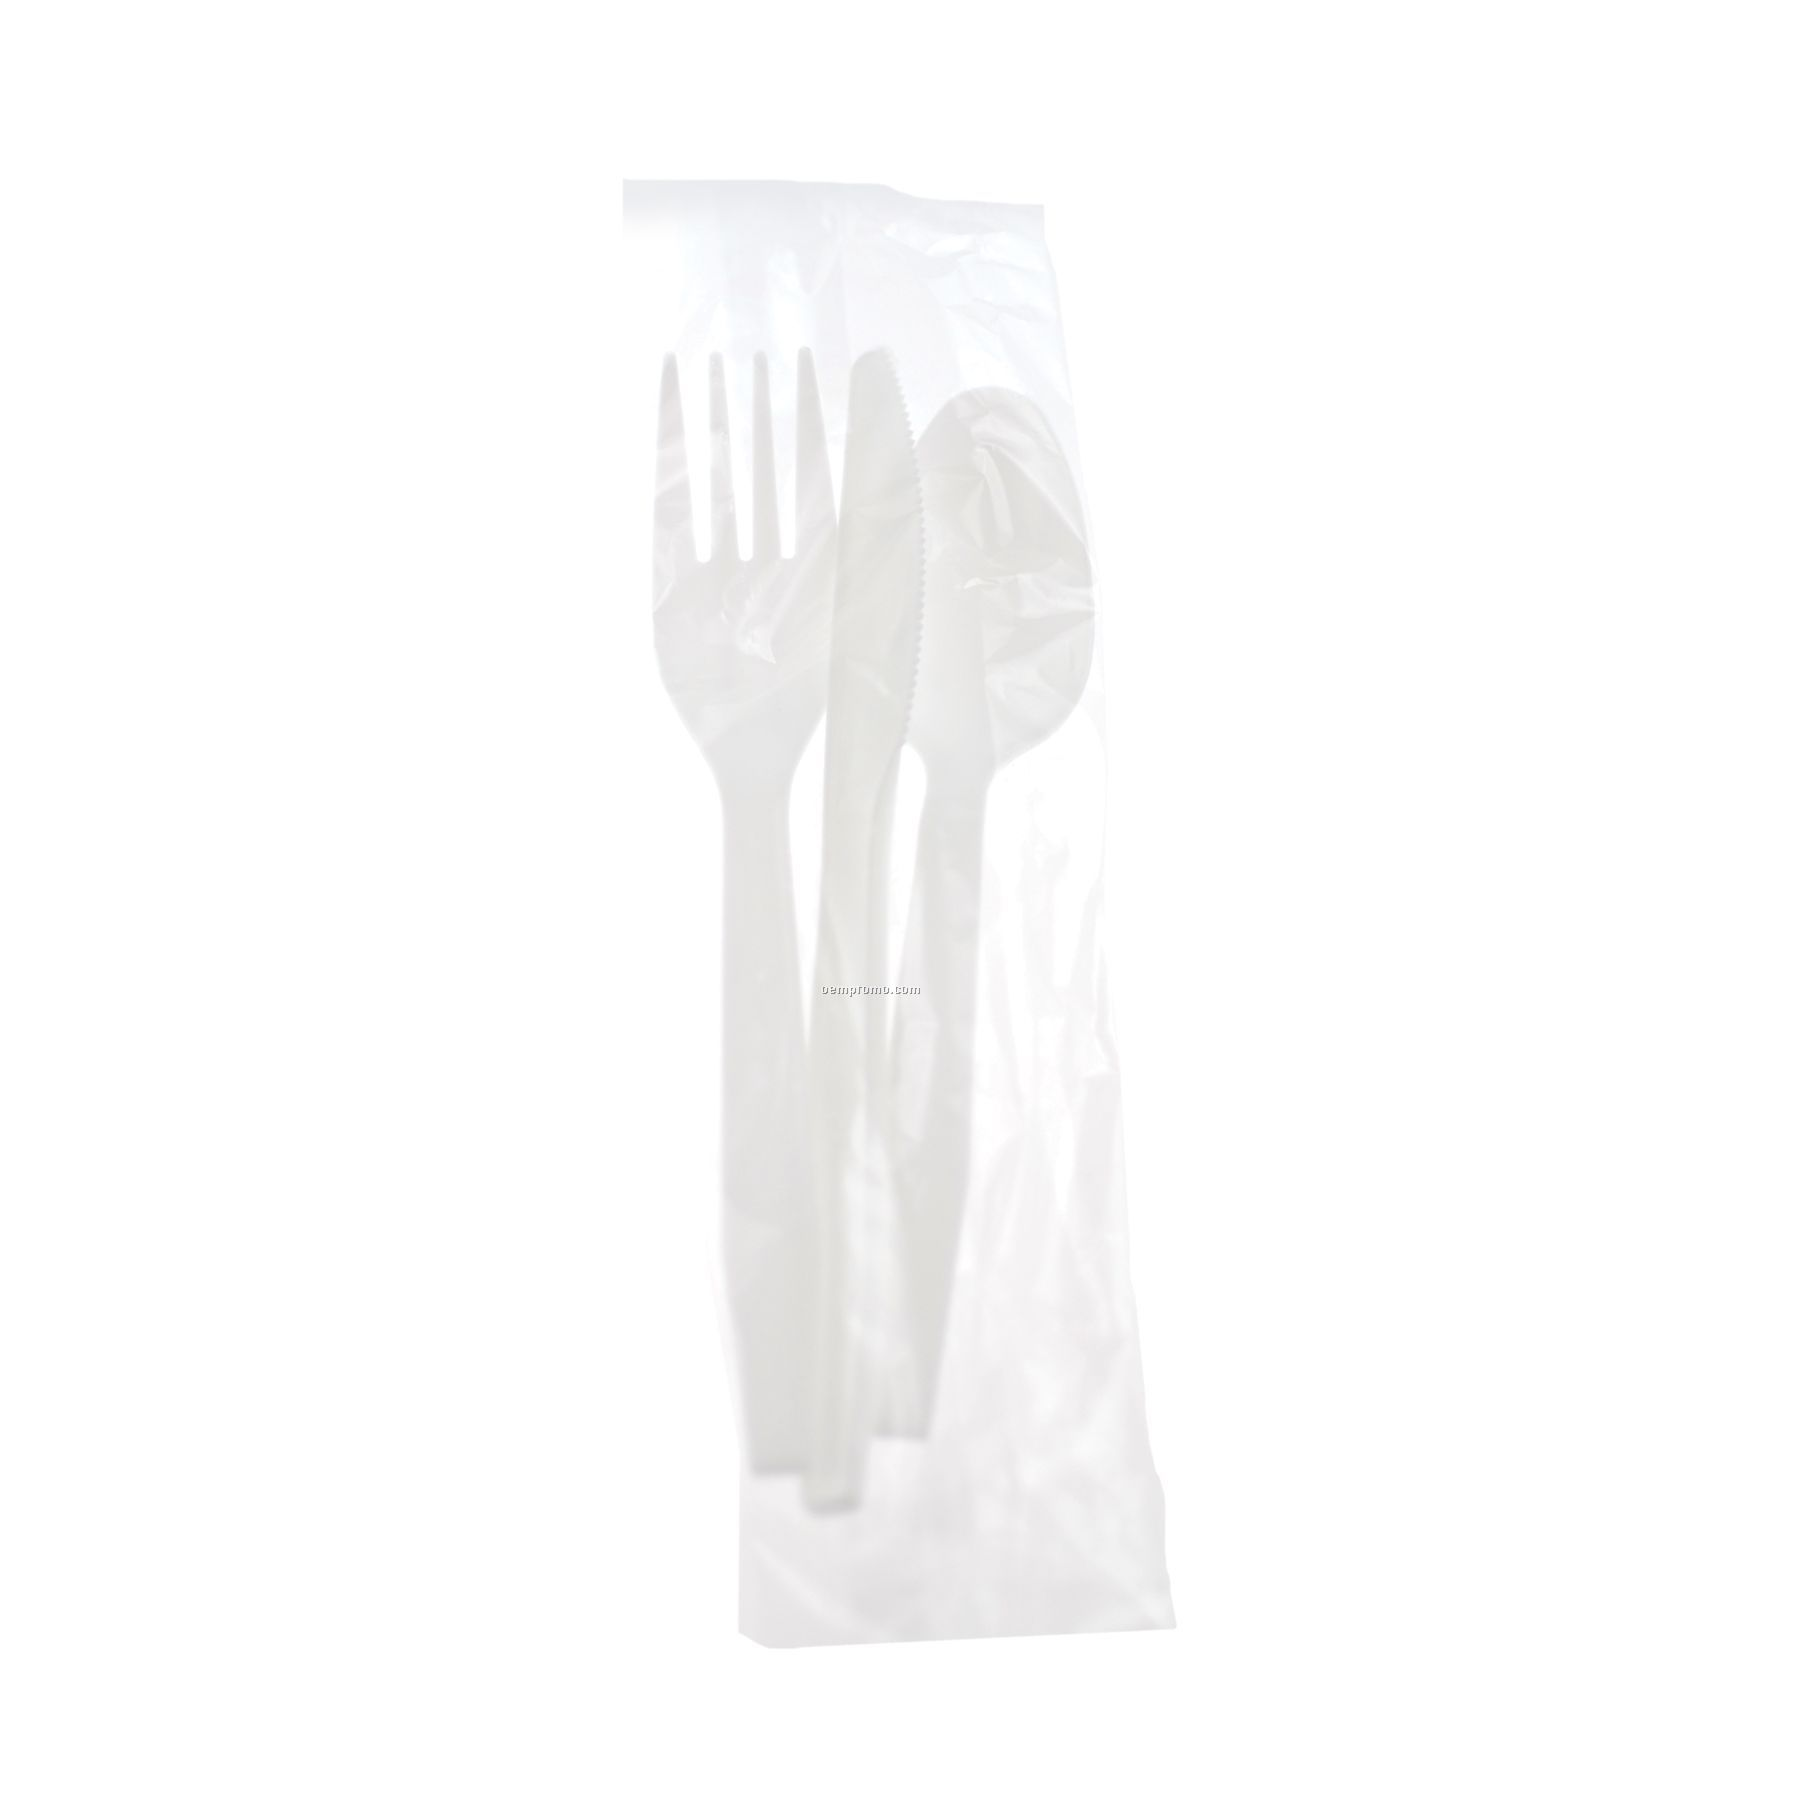 Utensil Package W/ Knife, Fork, And Spoon